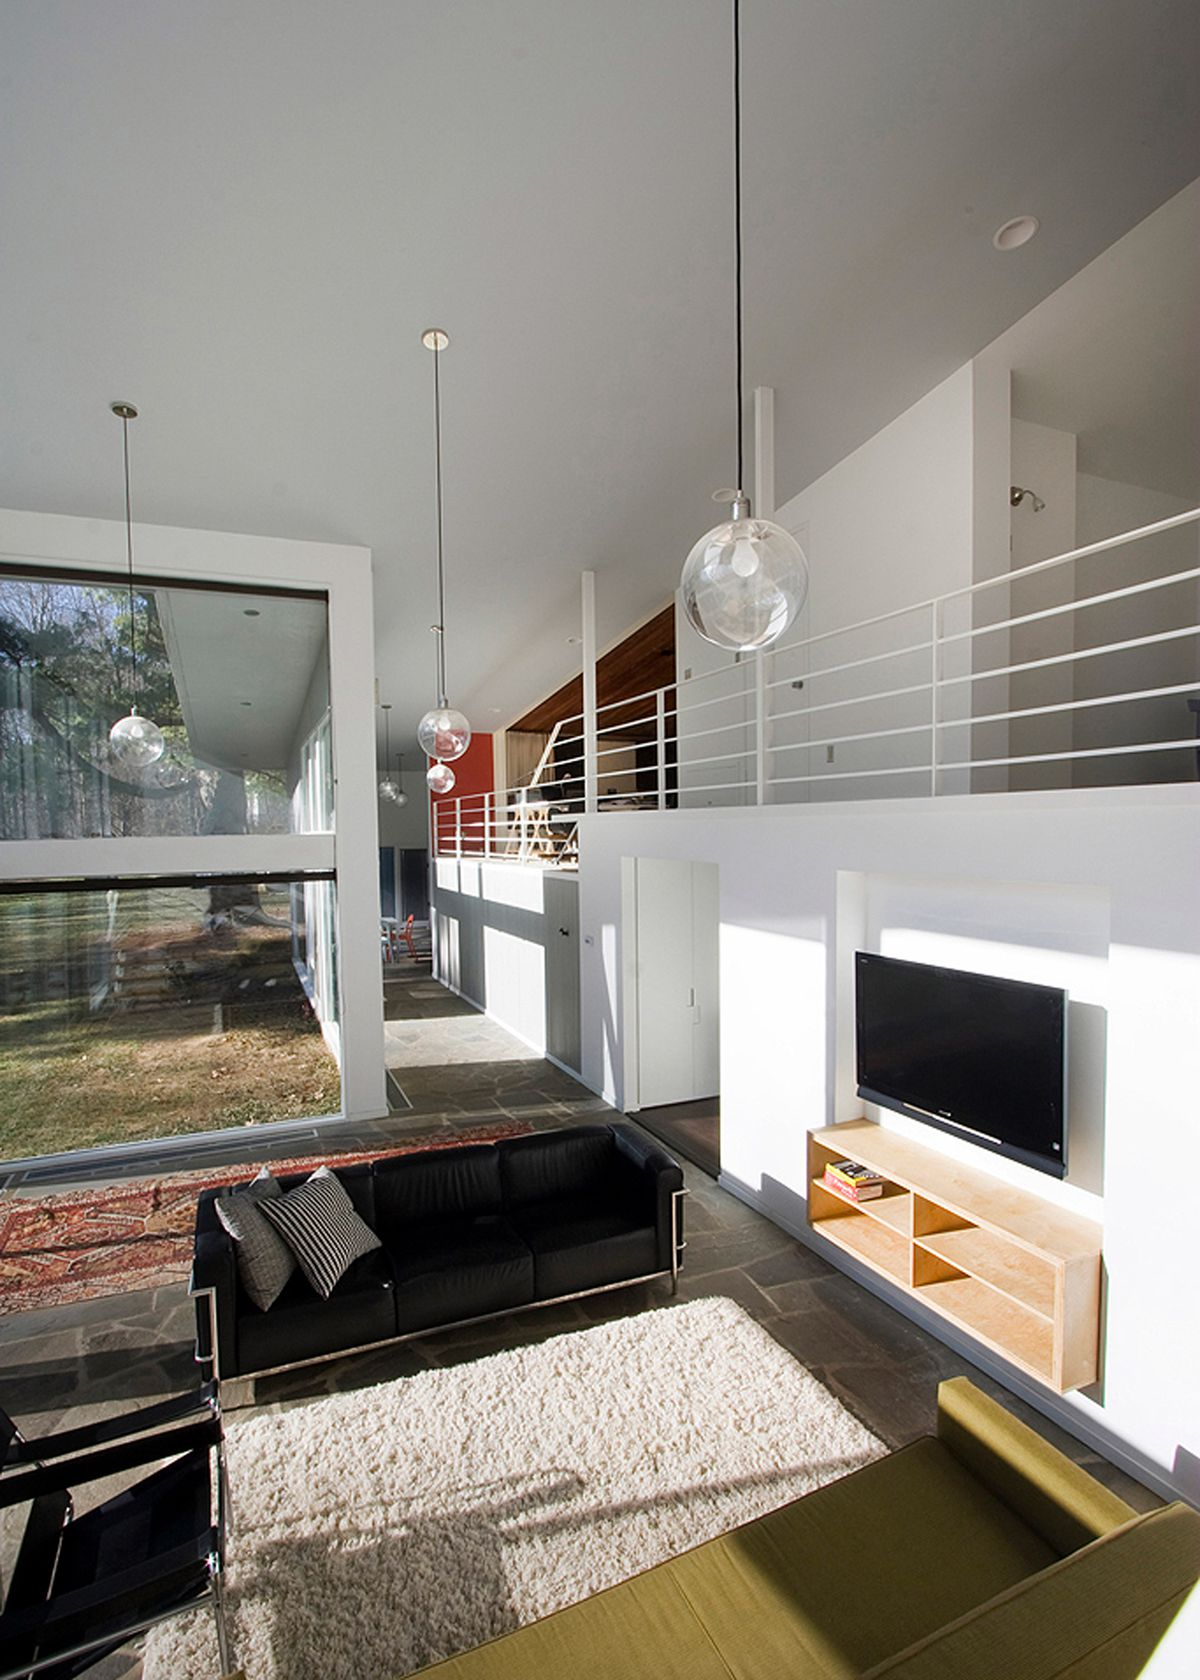 Living room with couches and large windows